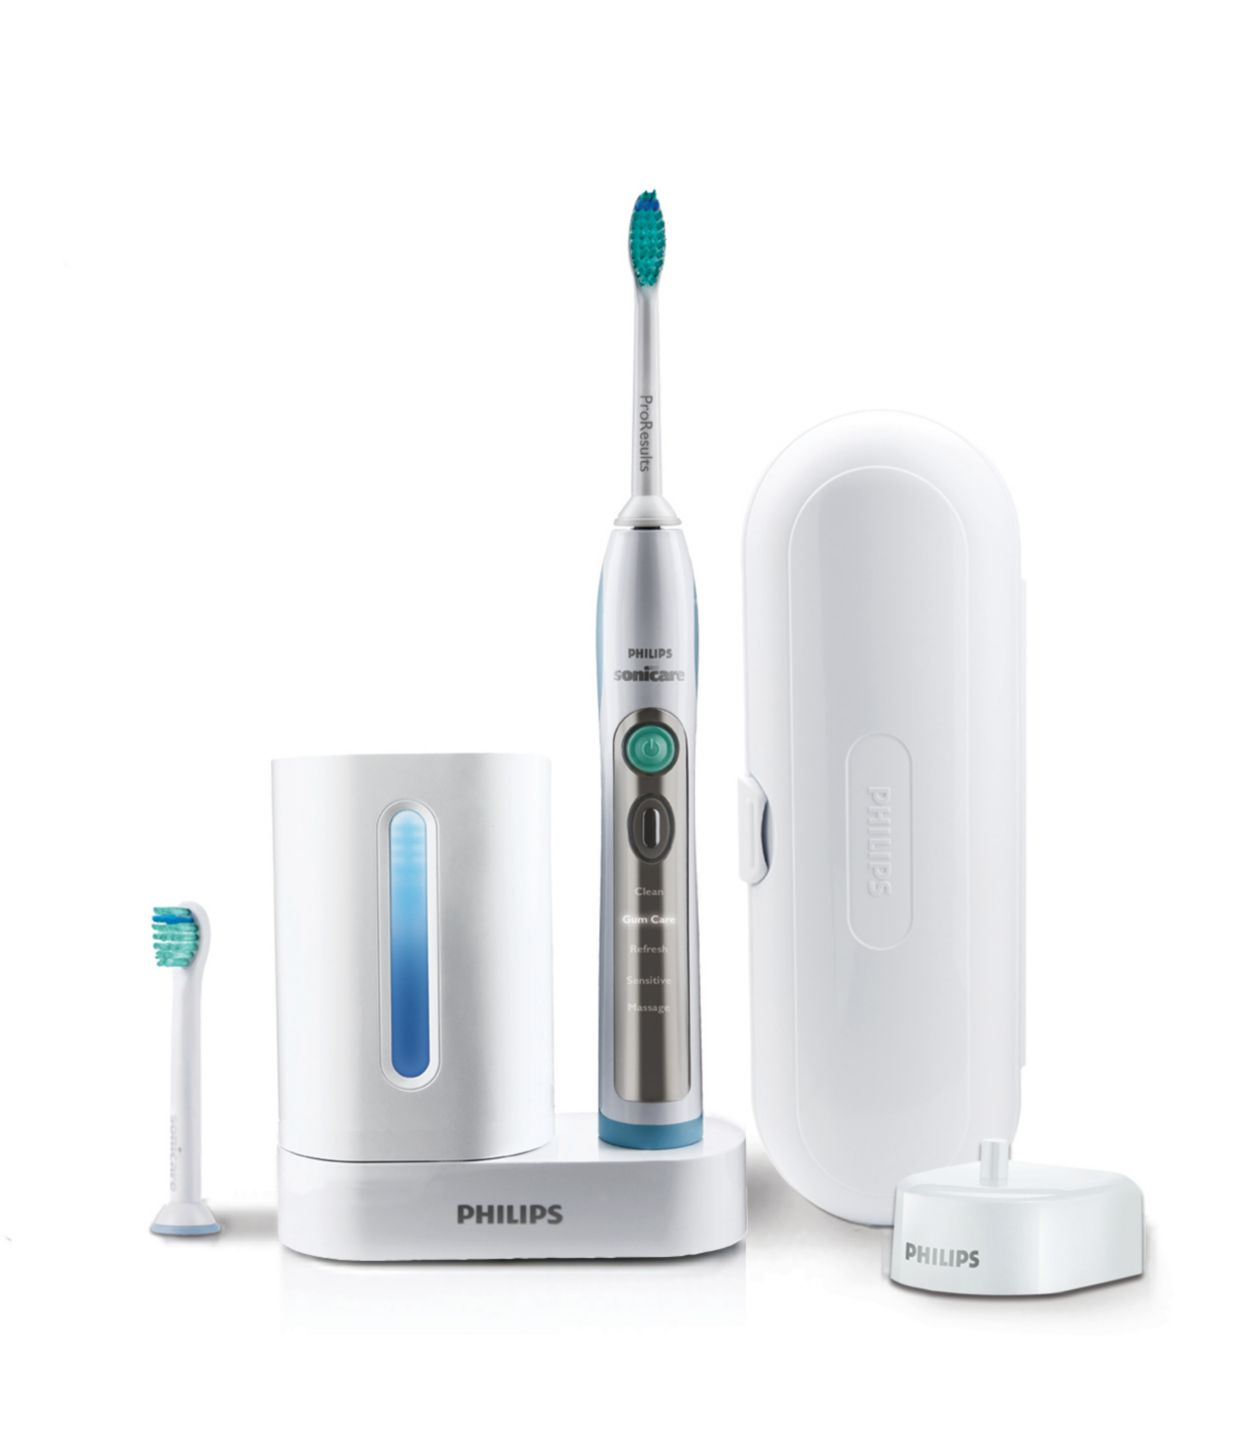 Stuccu: Best Deals on sonicare philips. Up To 70% offService catalog: Lowest Prices, Final Sales, Top Deals.